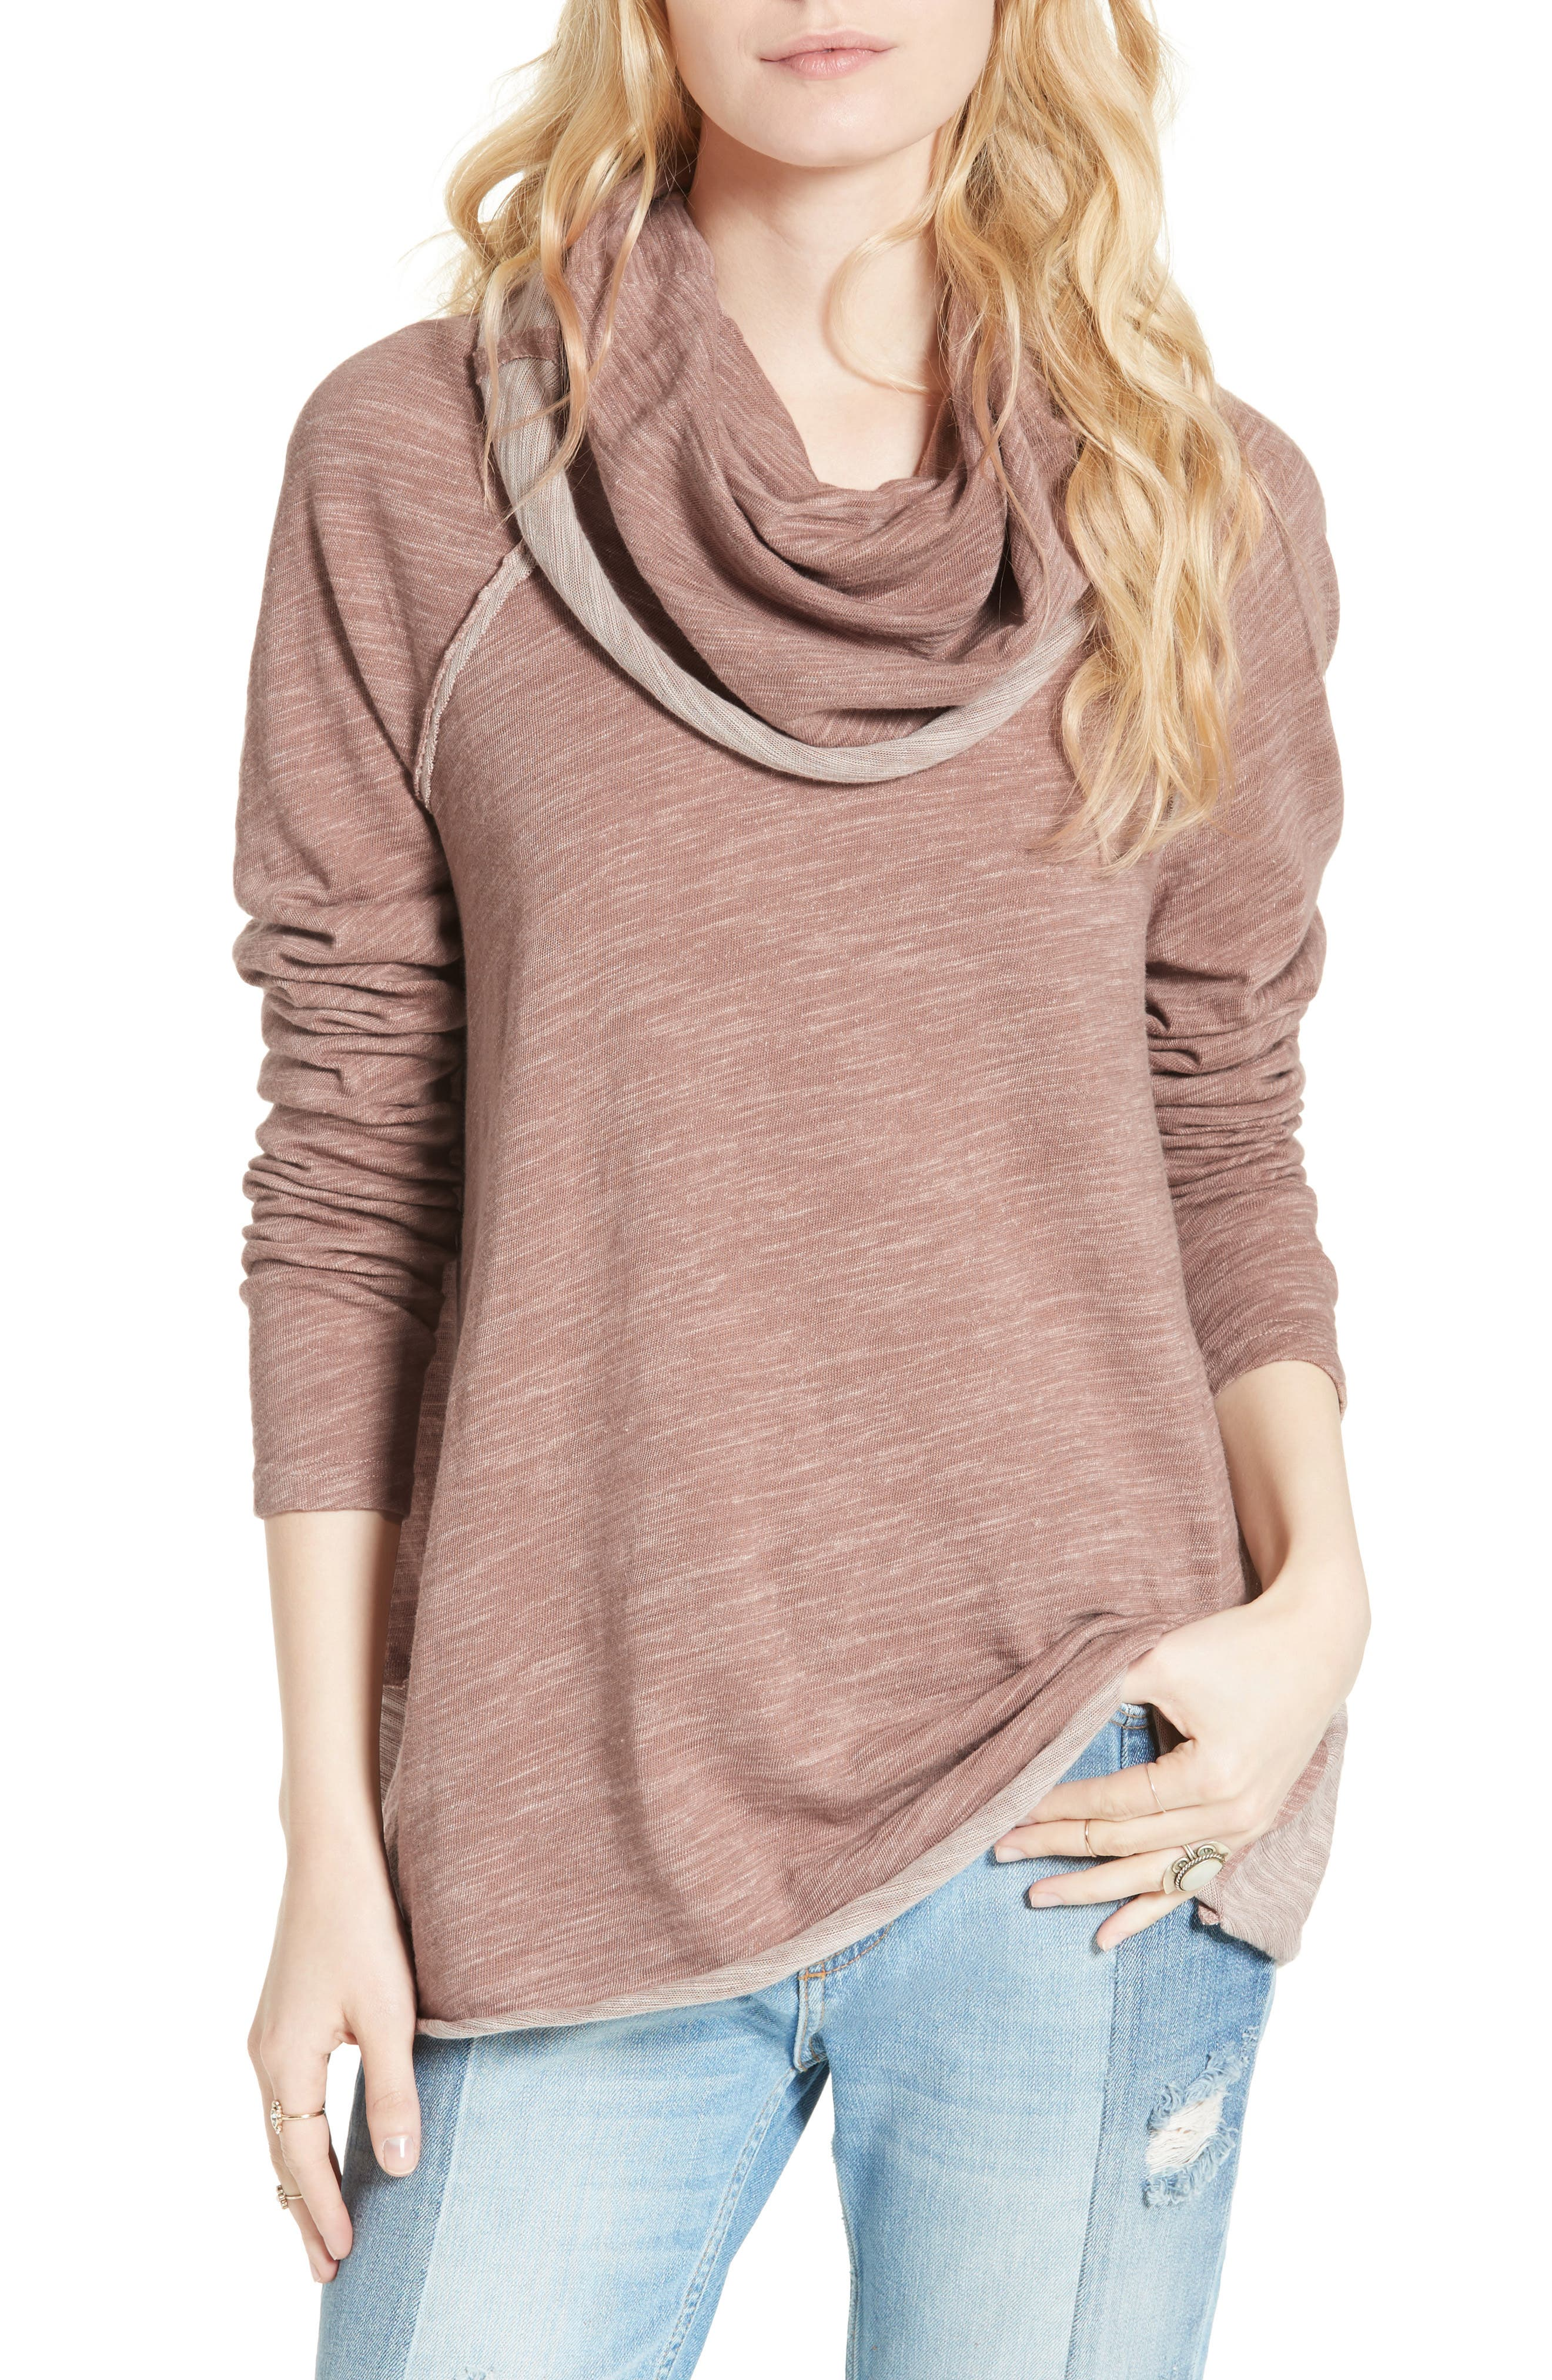 Alternate Image 1 Selected - Free People 'Beach Cocoon' Cowl Neck Pullover